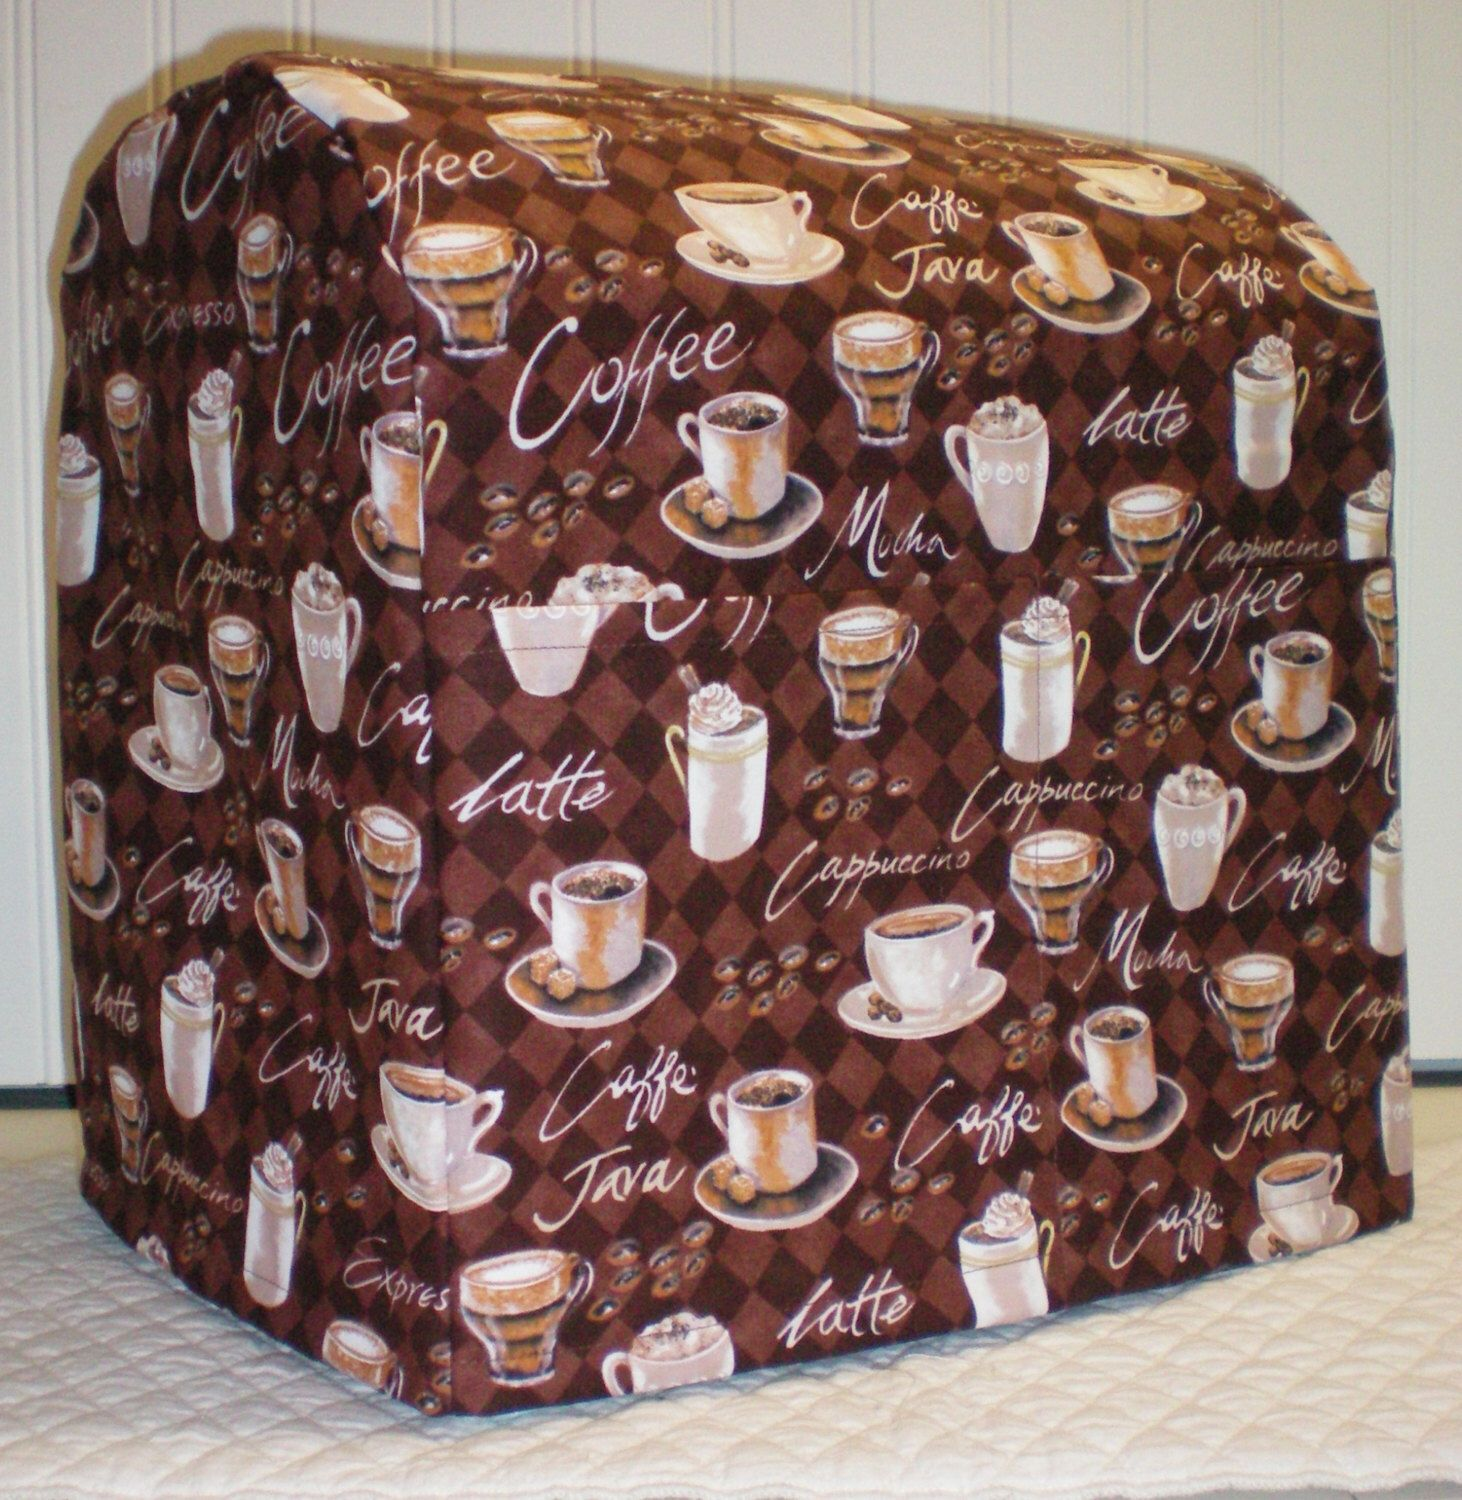 Coffee cups cover compatible with kitchenaid stand mixer